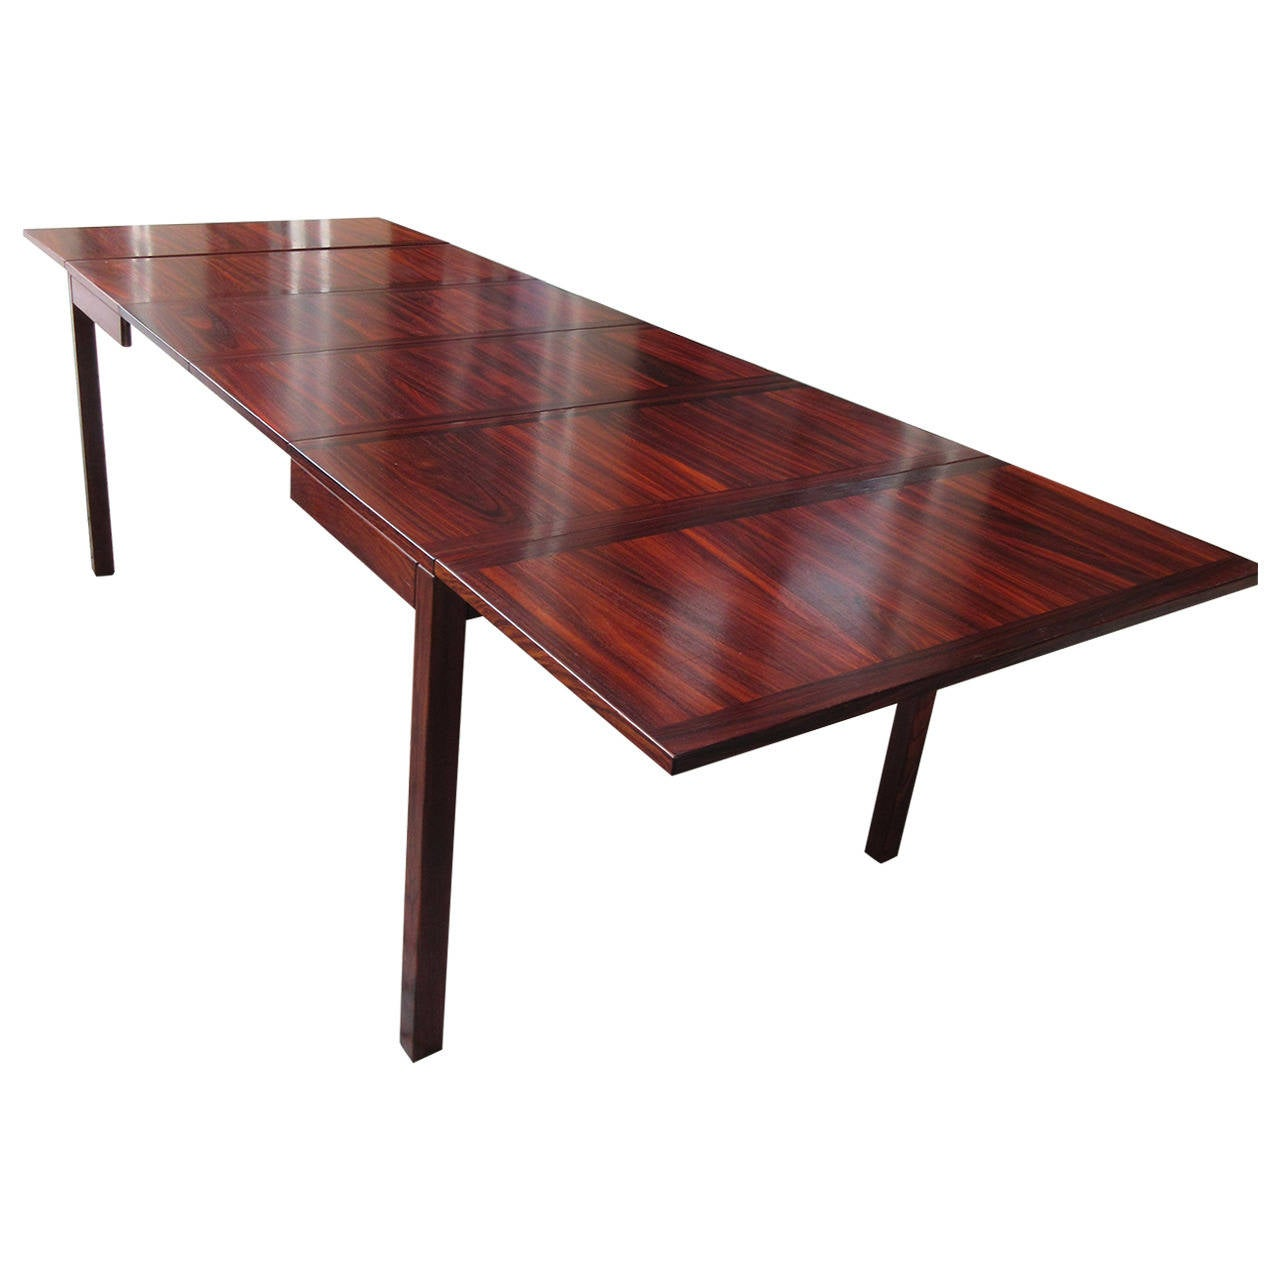 Kai winding rosewood drop leaf extension table by vejle at for Drop leaf extension table